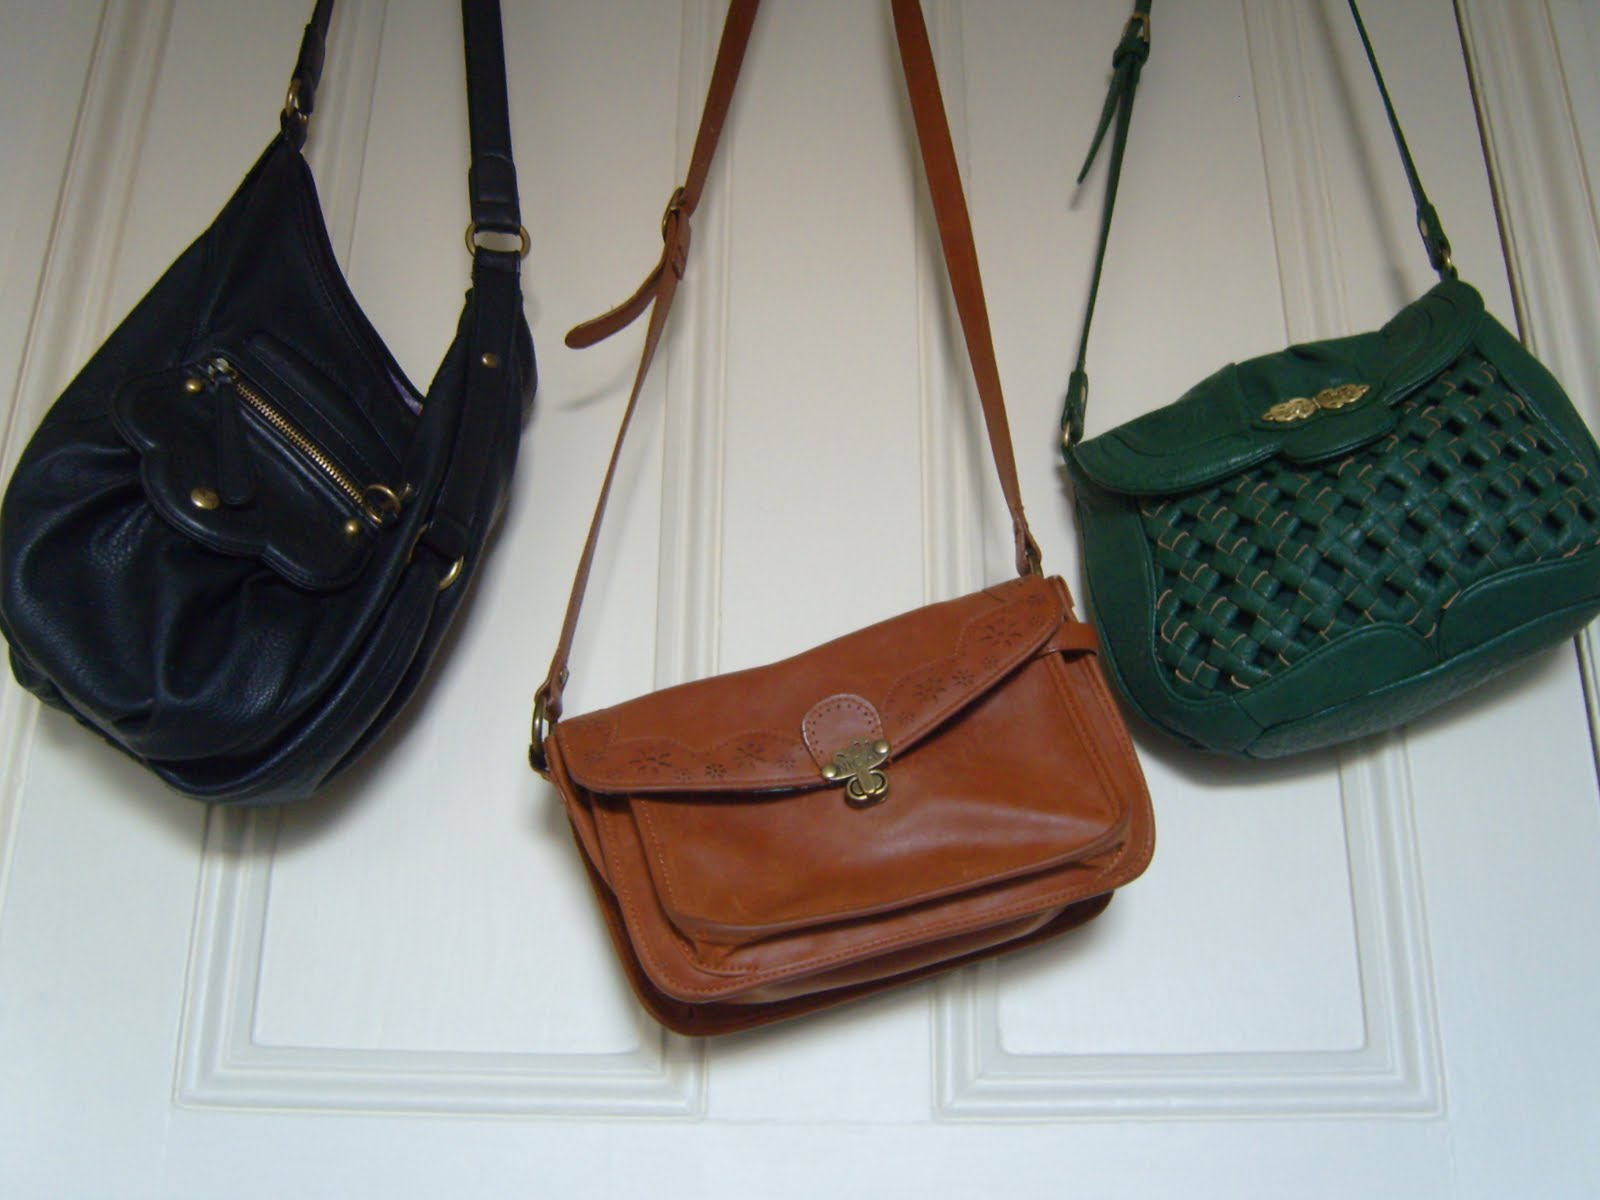 As Long Time Might Know I Have A Mild Obsession Thing For Nica Handbags Already Own 4 Different Bags